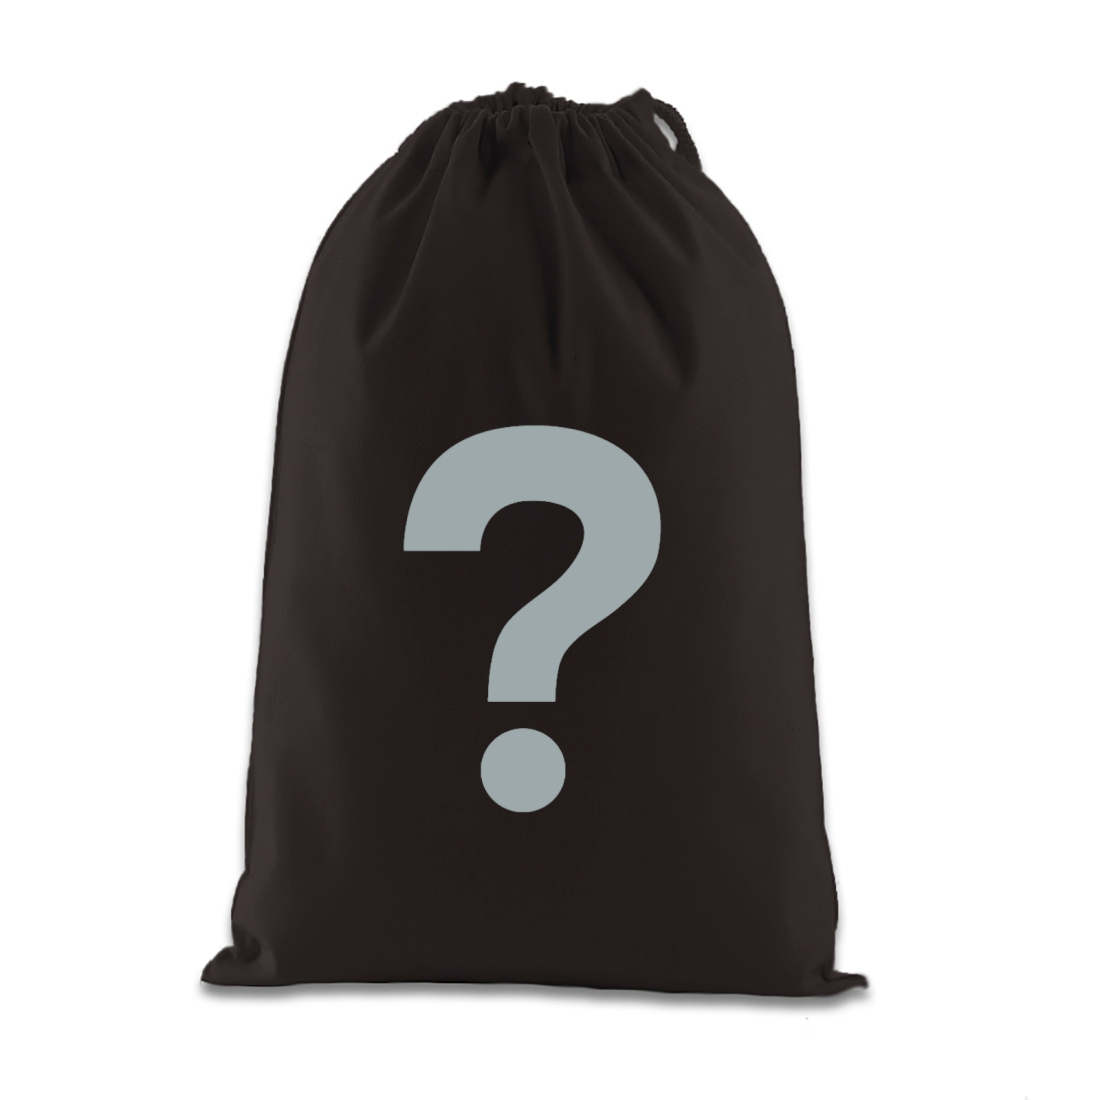 question bag